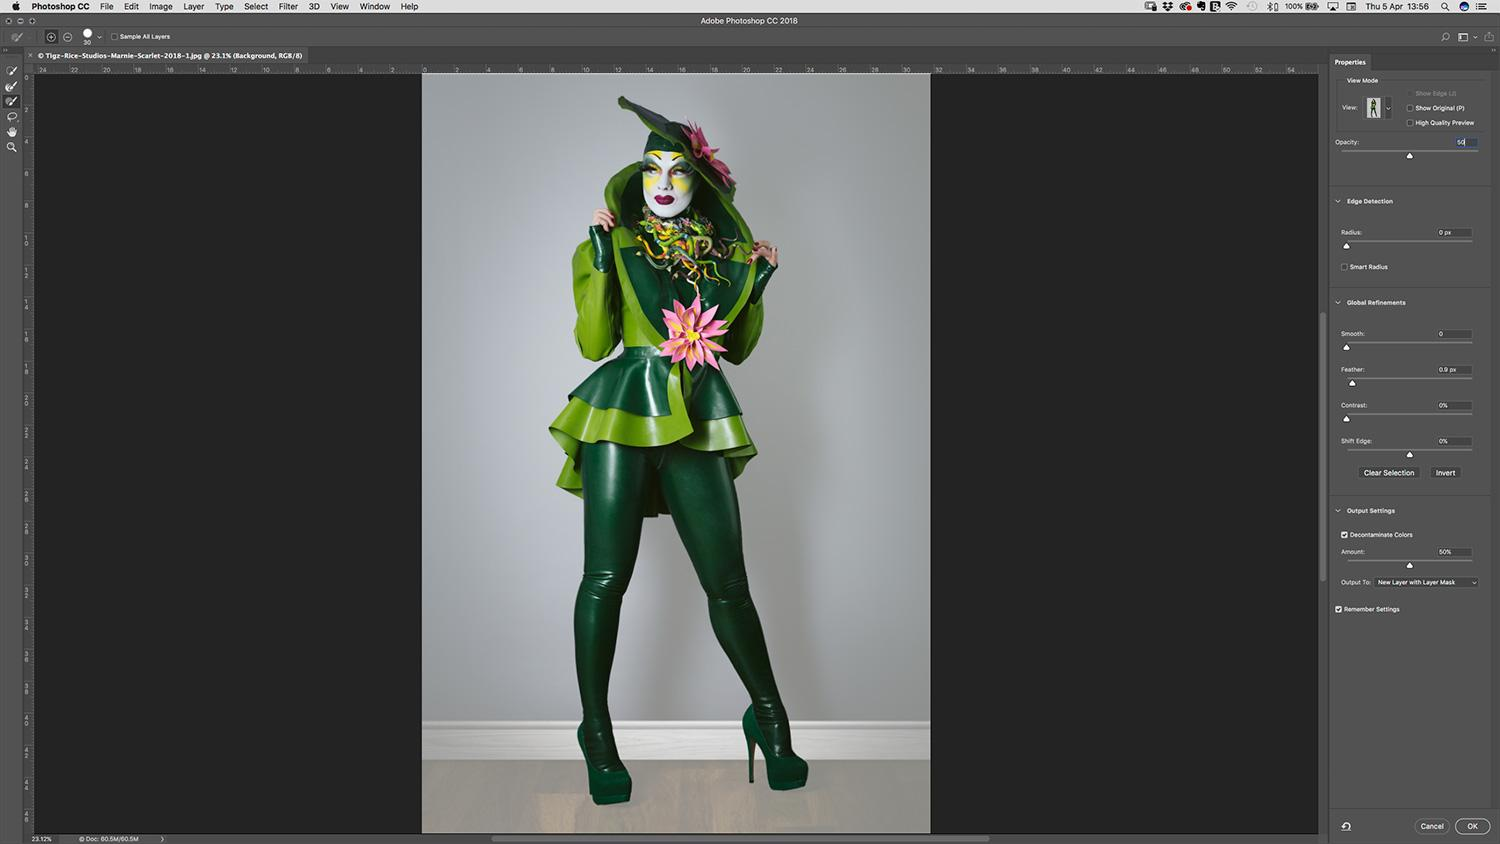 Photoshop tutorial: How to use the Select Subject tool in Photoshop